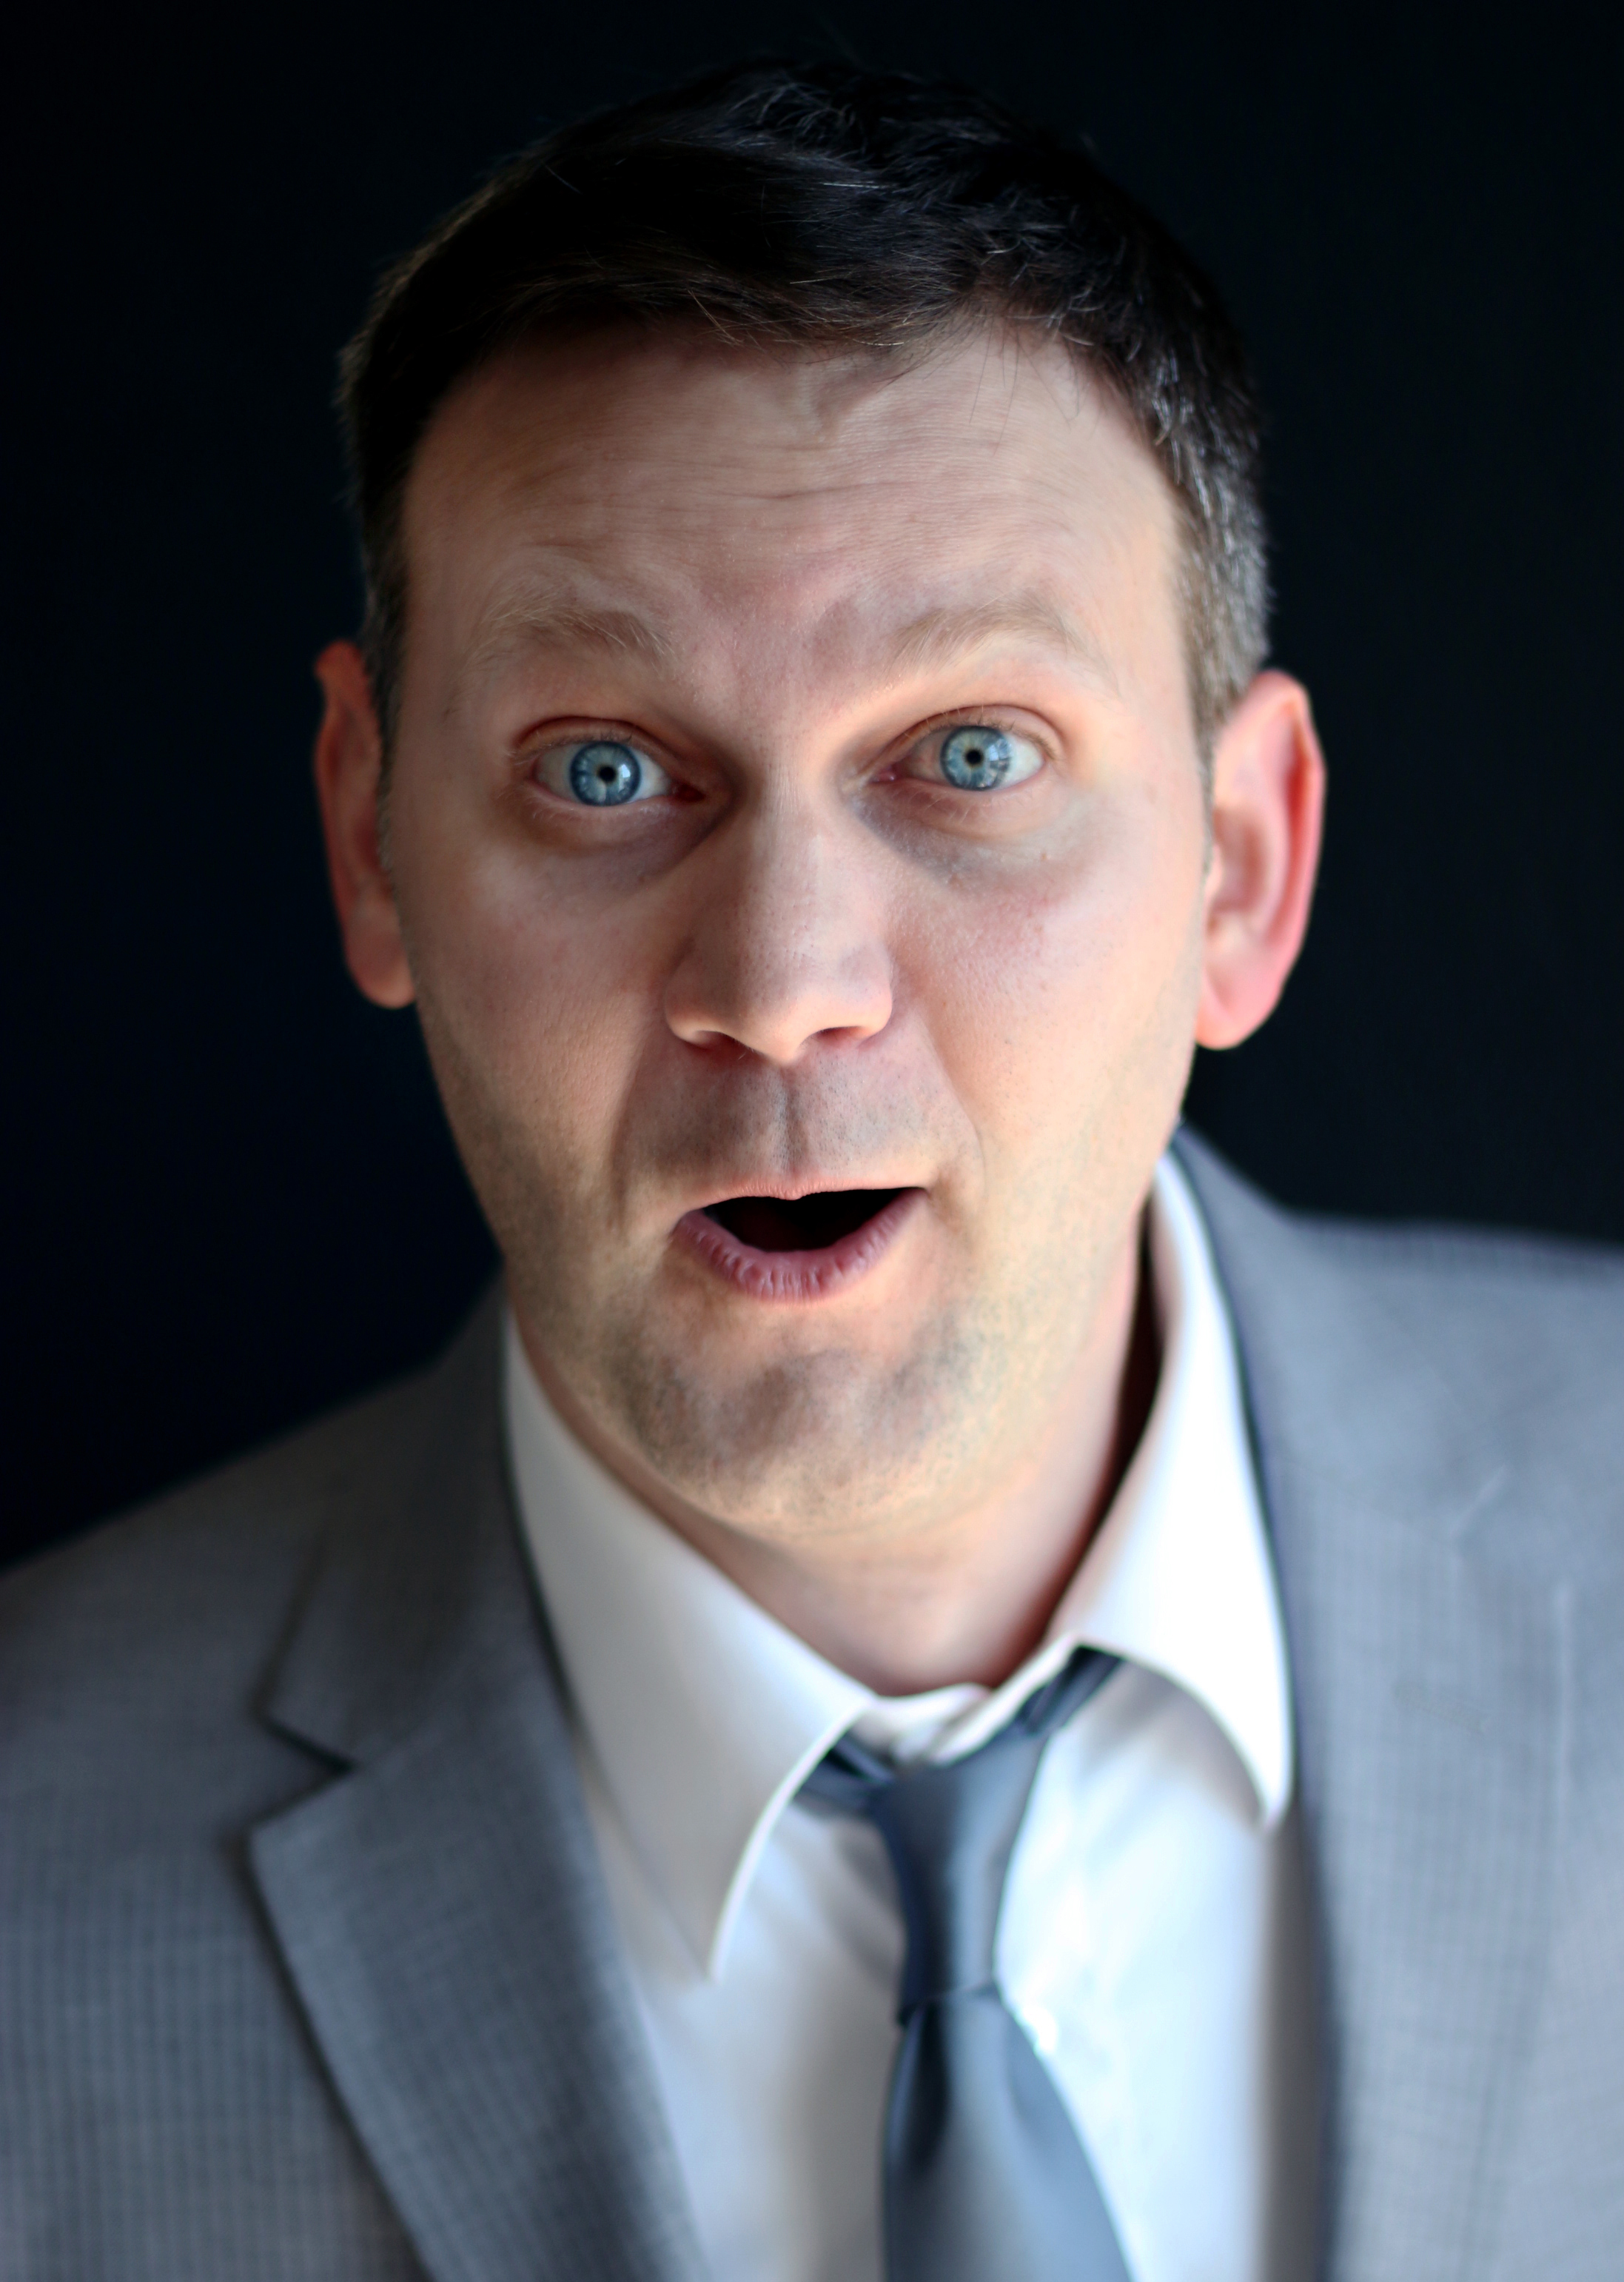 Actor/Comedian: Kevin Kittridge